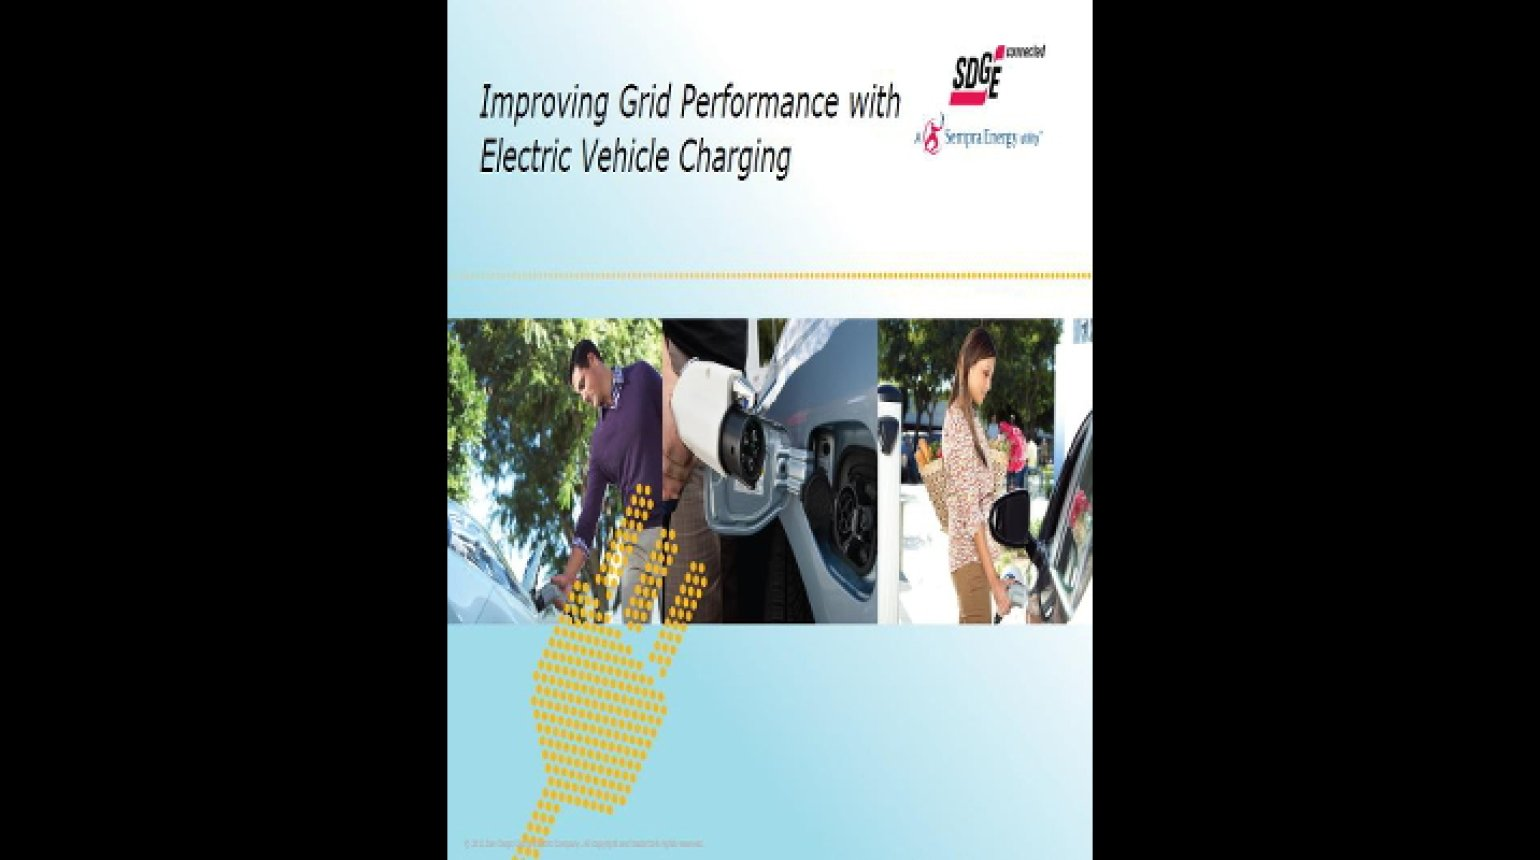 Video - Improving Grid Performance with Electric Vehicle Charging